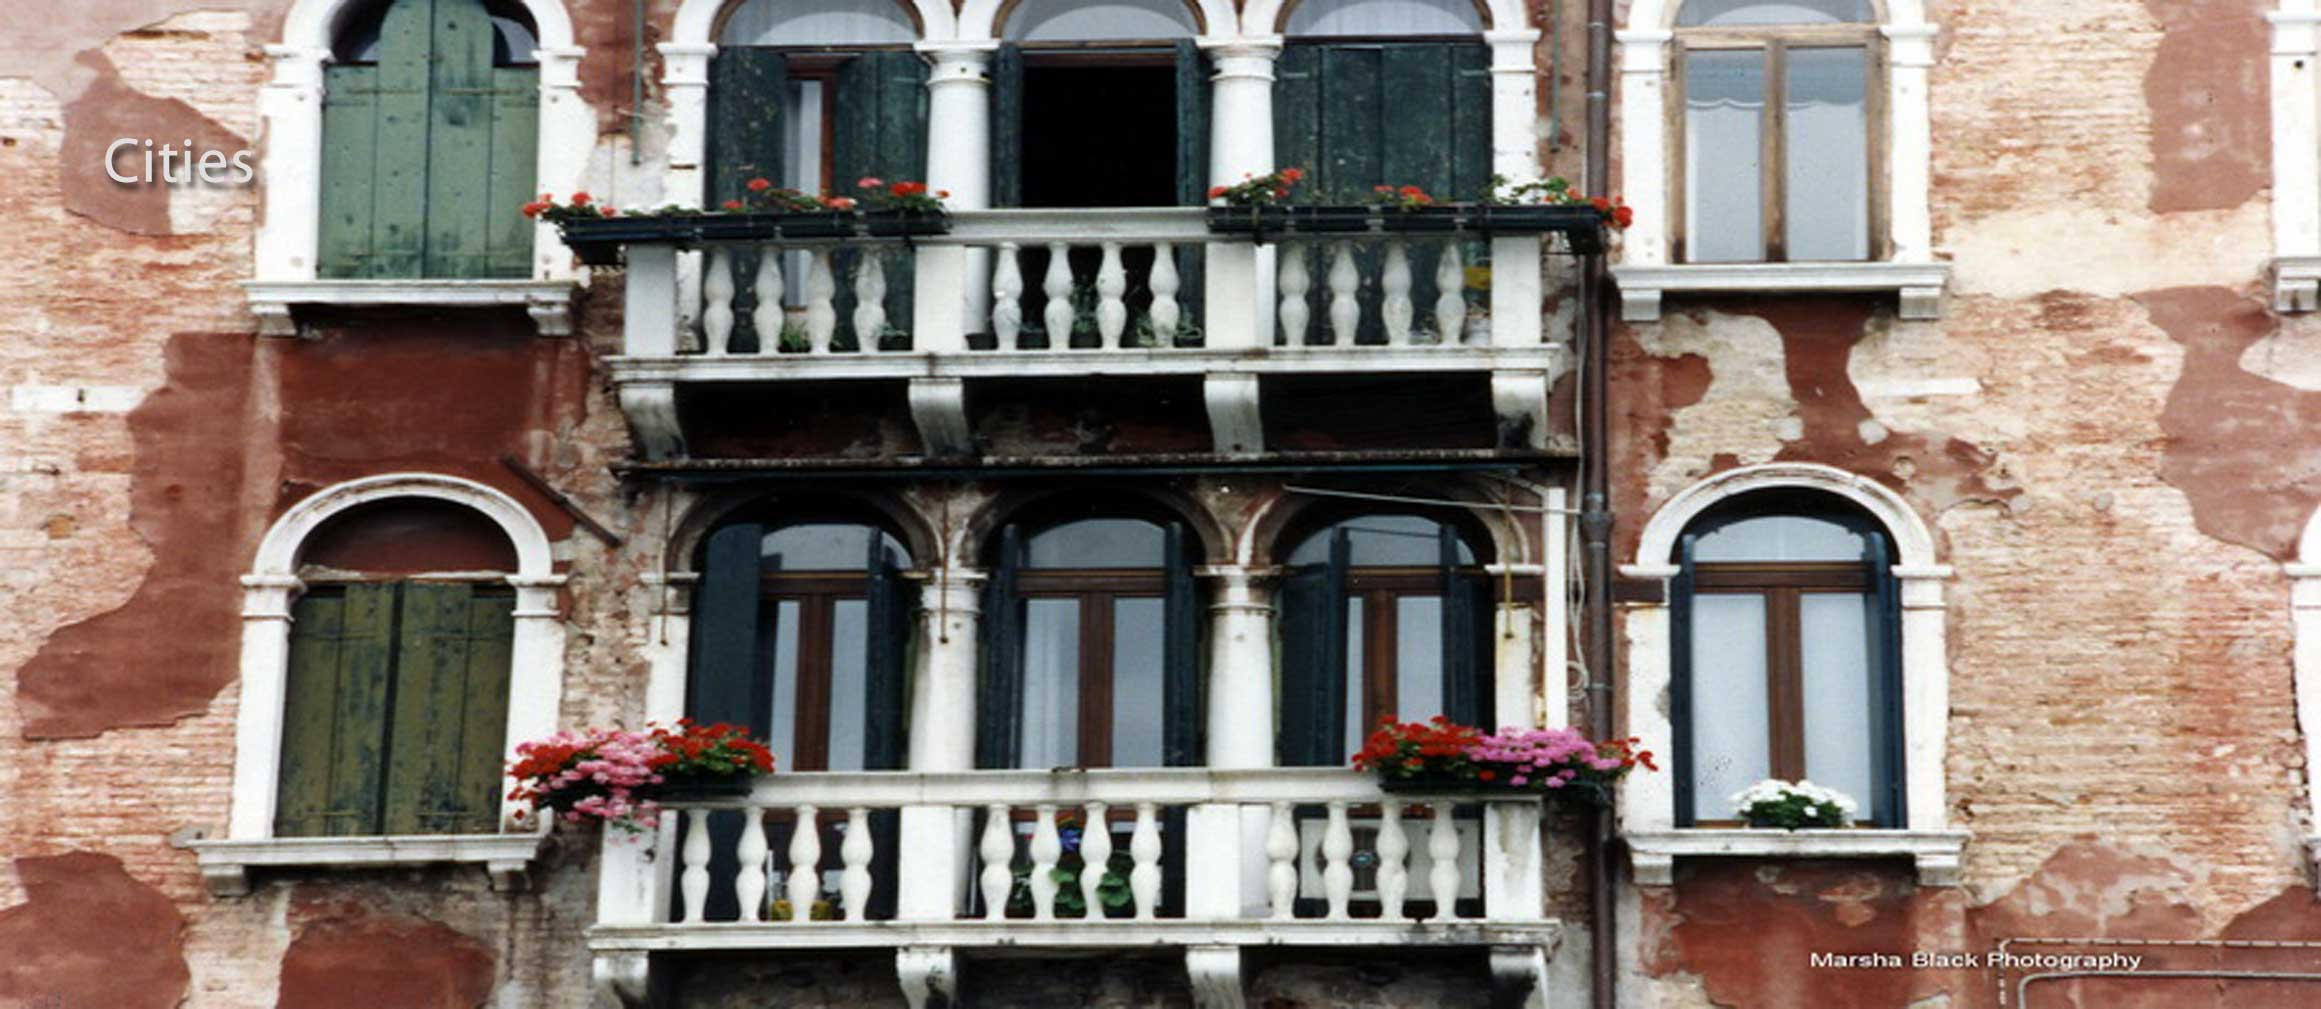 Cities-Venice-Windows-on-the-canal-Marsha-J-Black-900